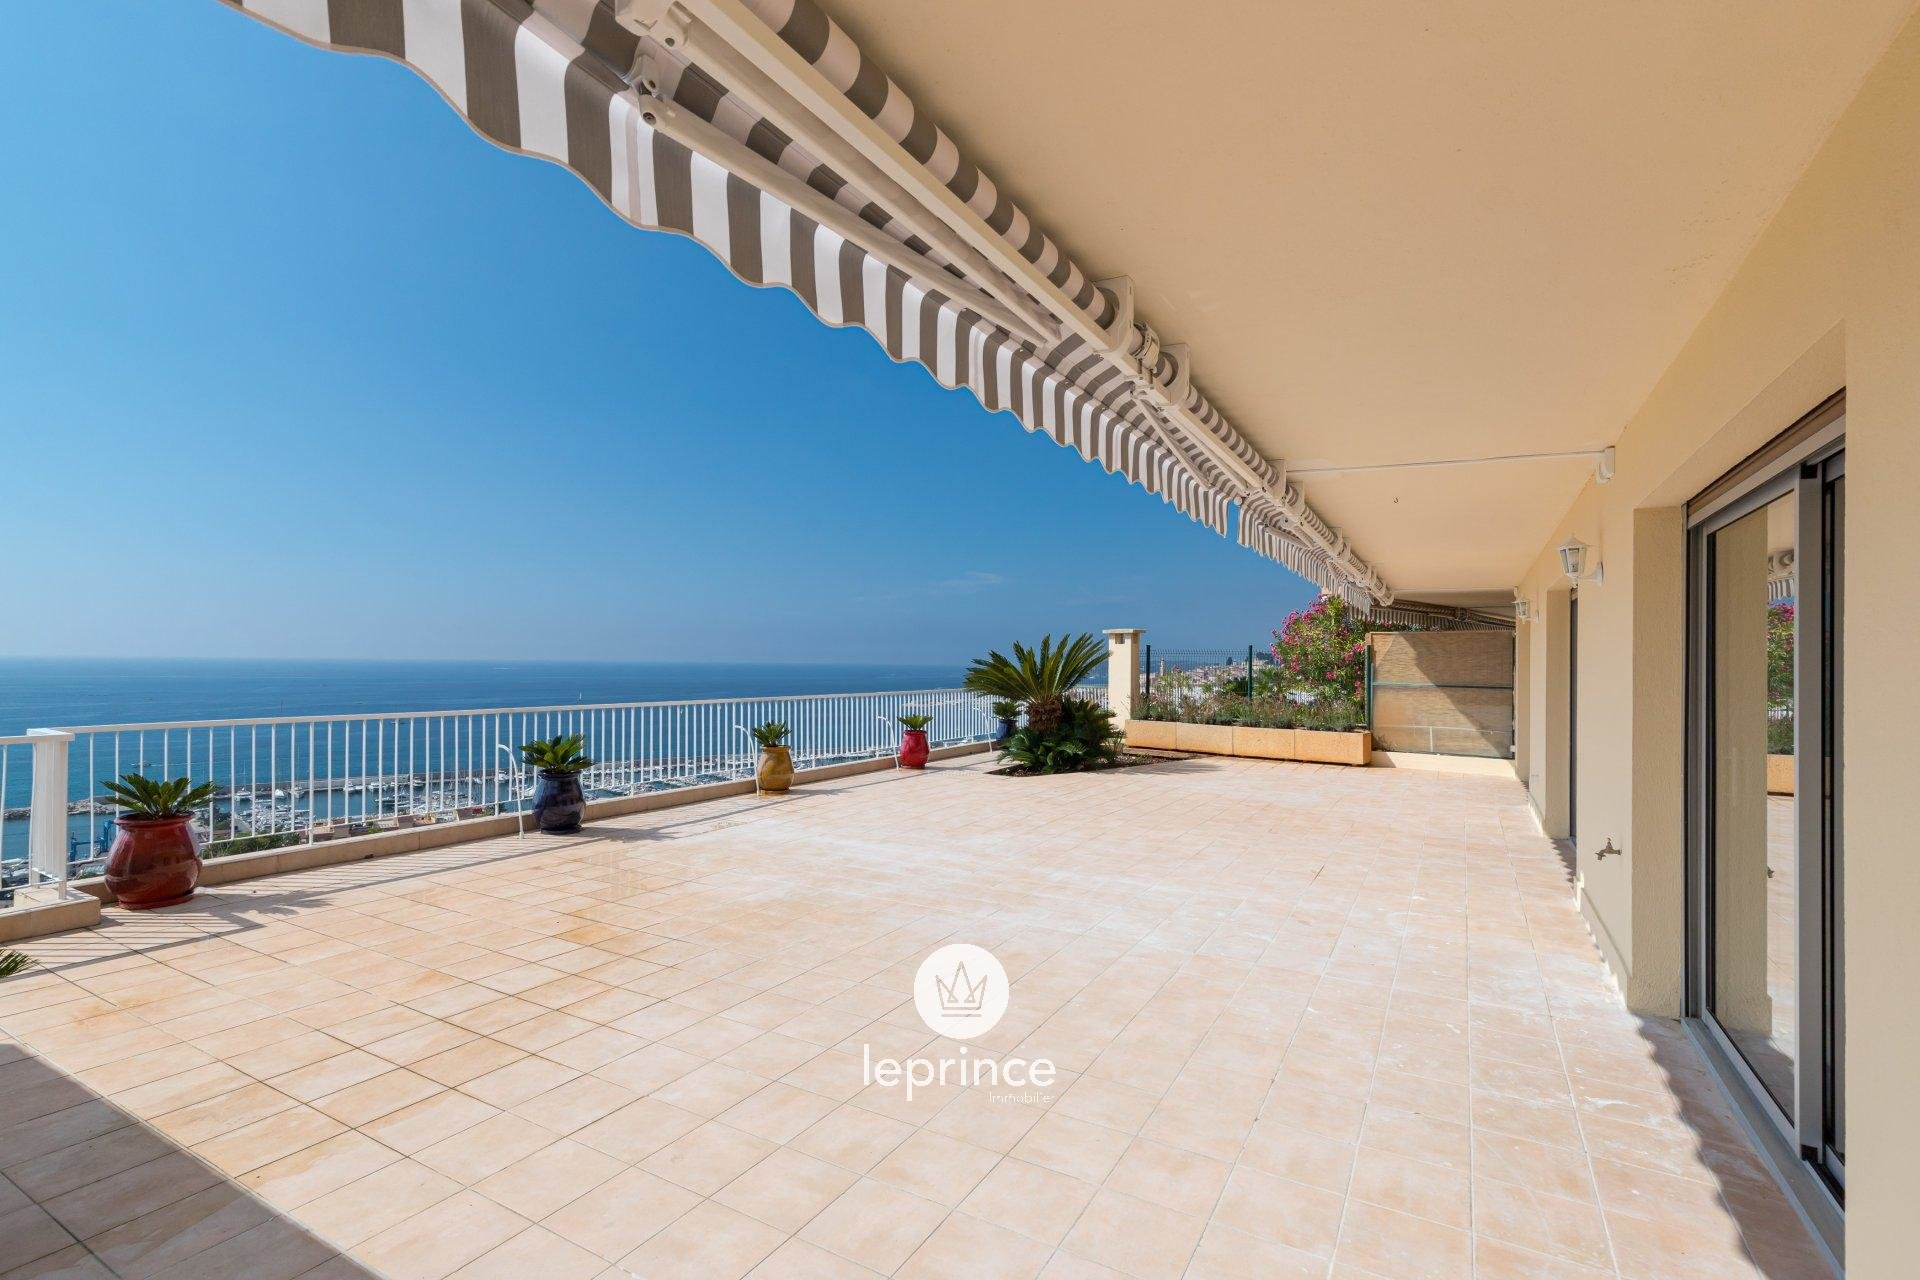 Menton / Garavan : 3 Rooms Renovated Sea View and Terrace of 230m2 - Cellars and Garage